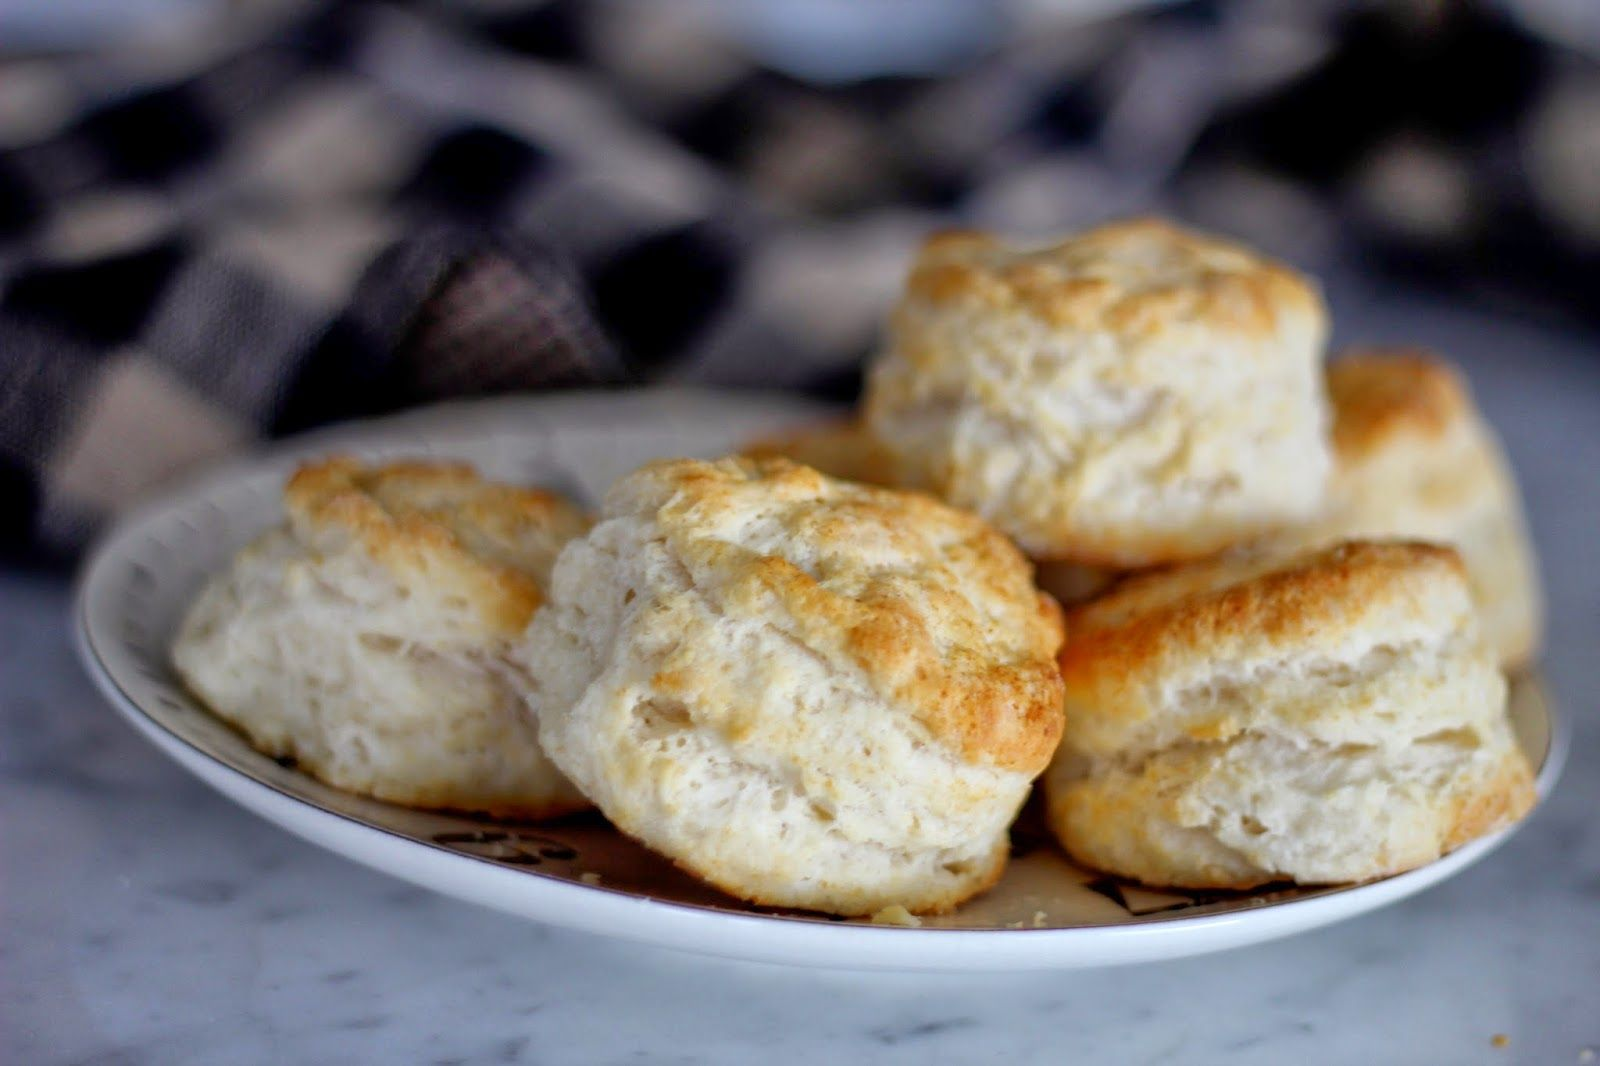 A Bountiful Kitchen: Cracker Barrel Biscuits (copycat recipe)